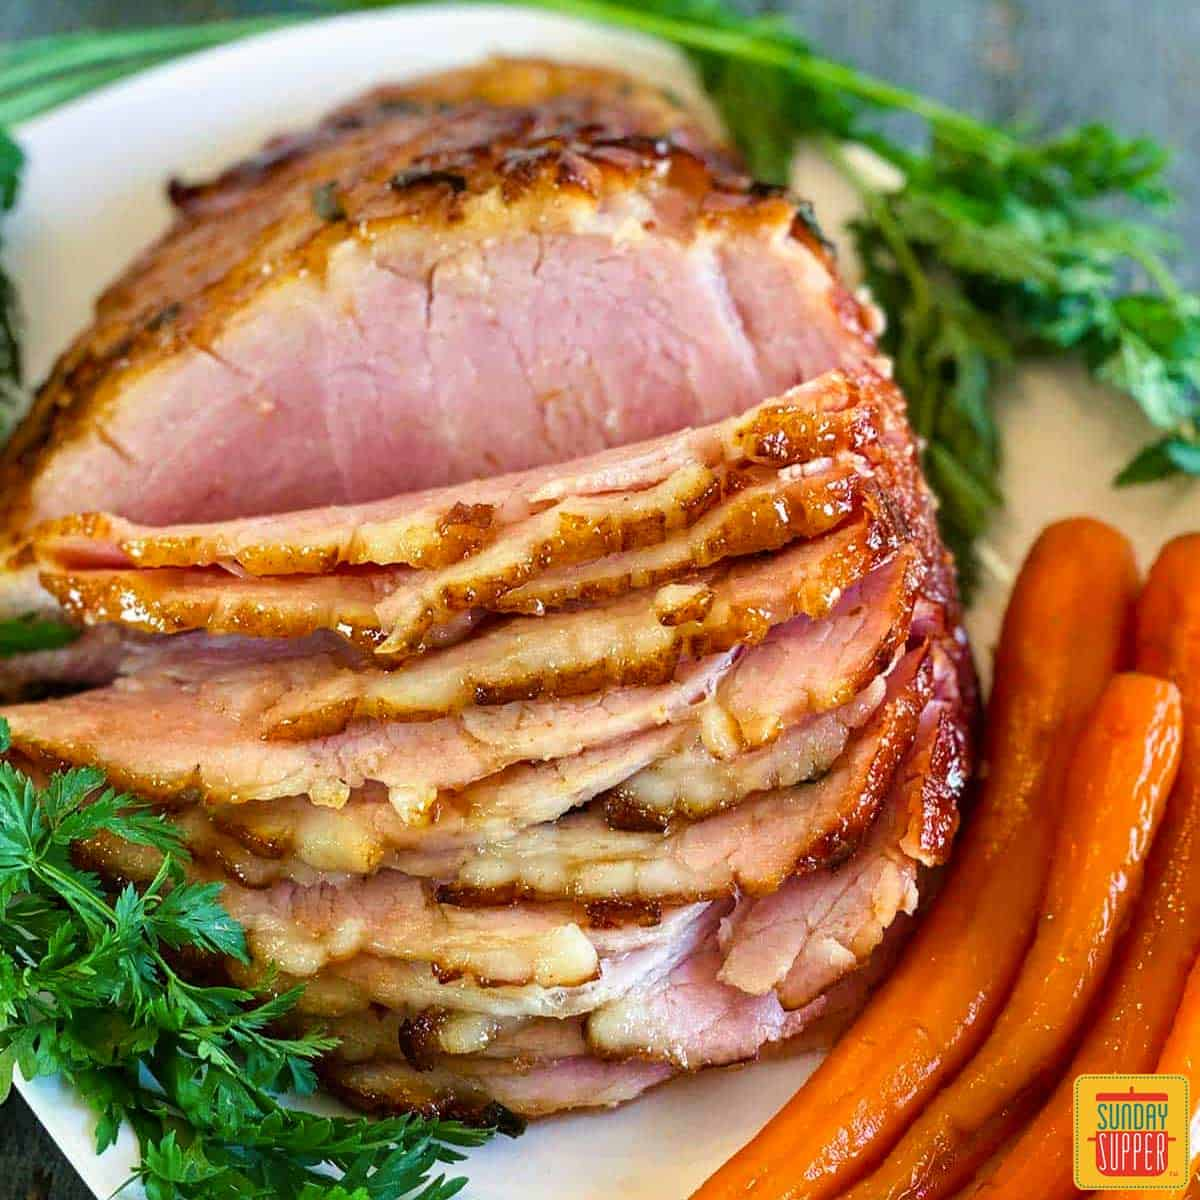 Air fryer ham with a side of greens and carrots on a white plate